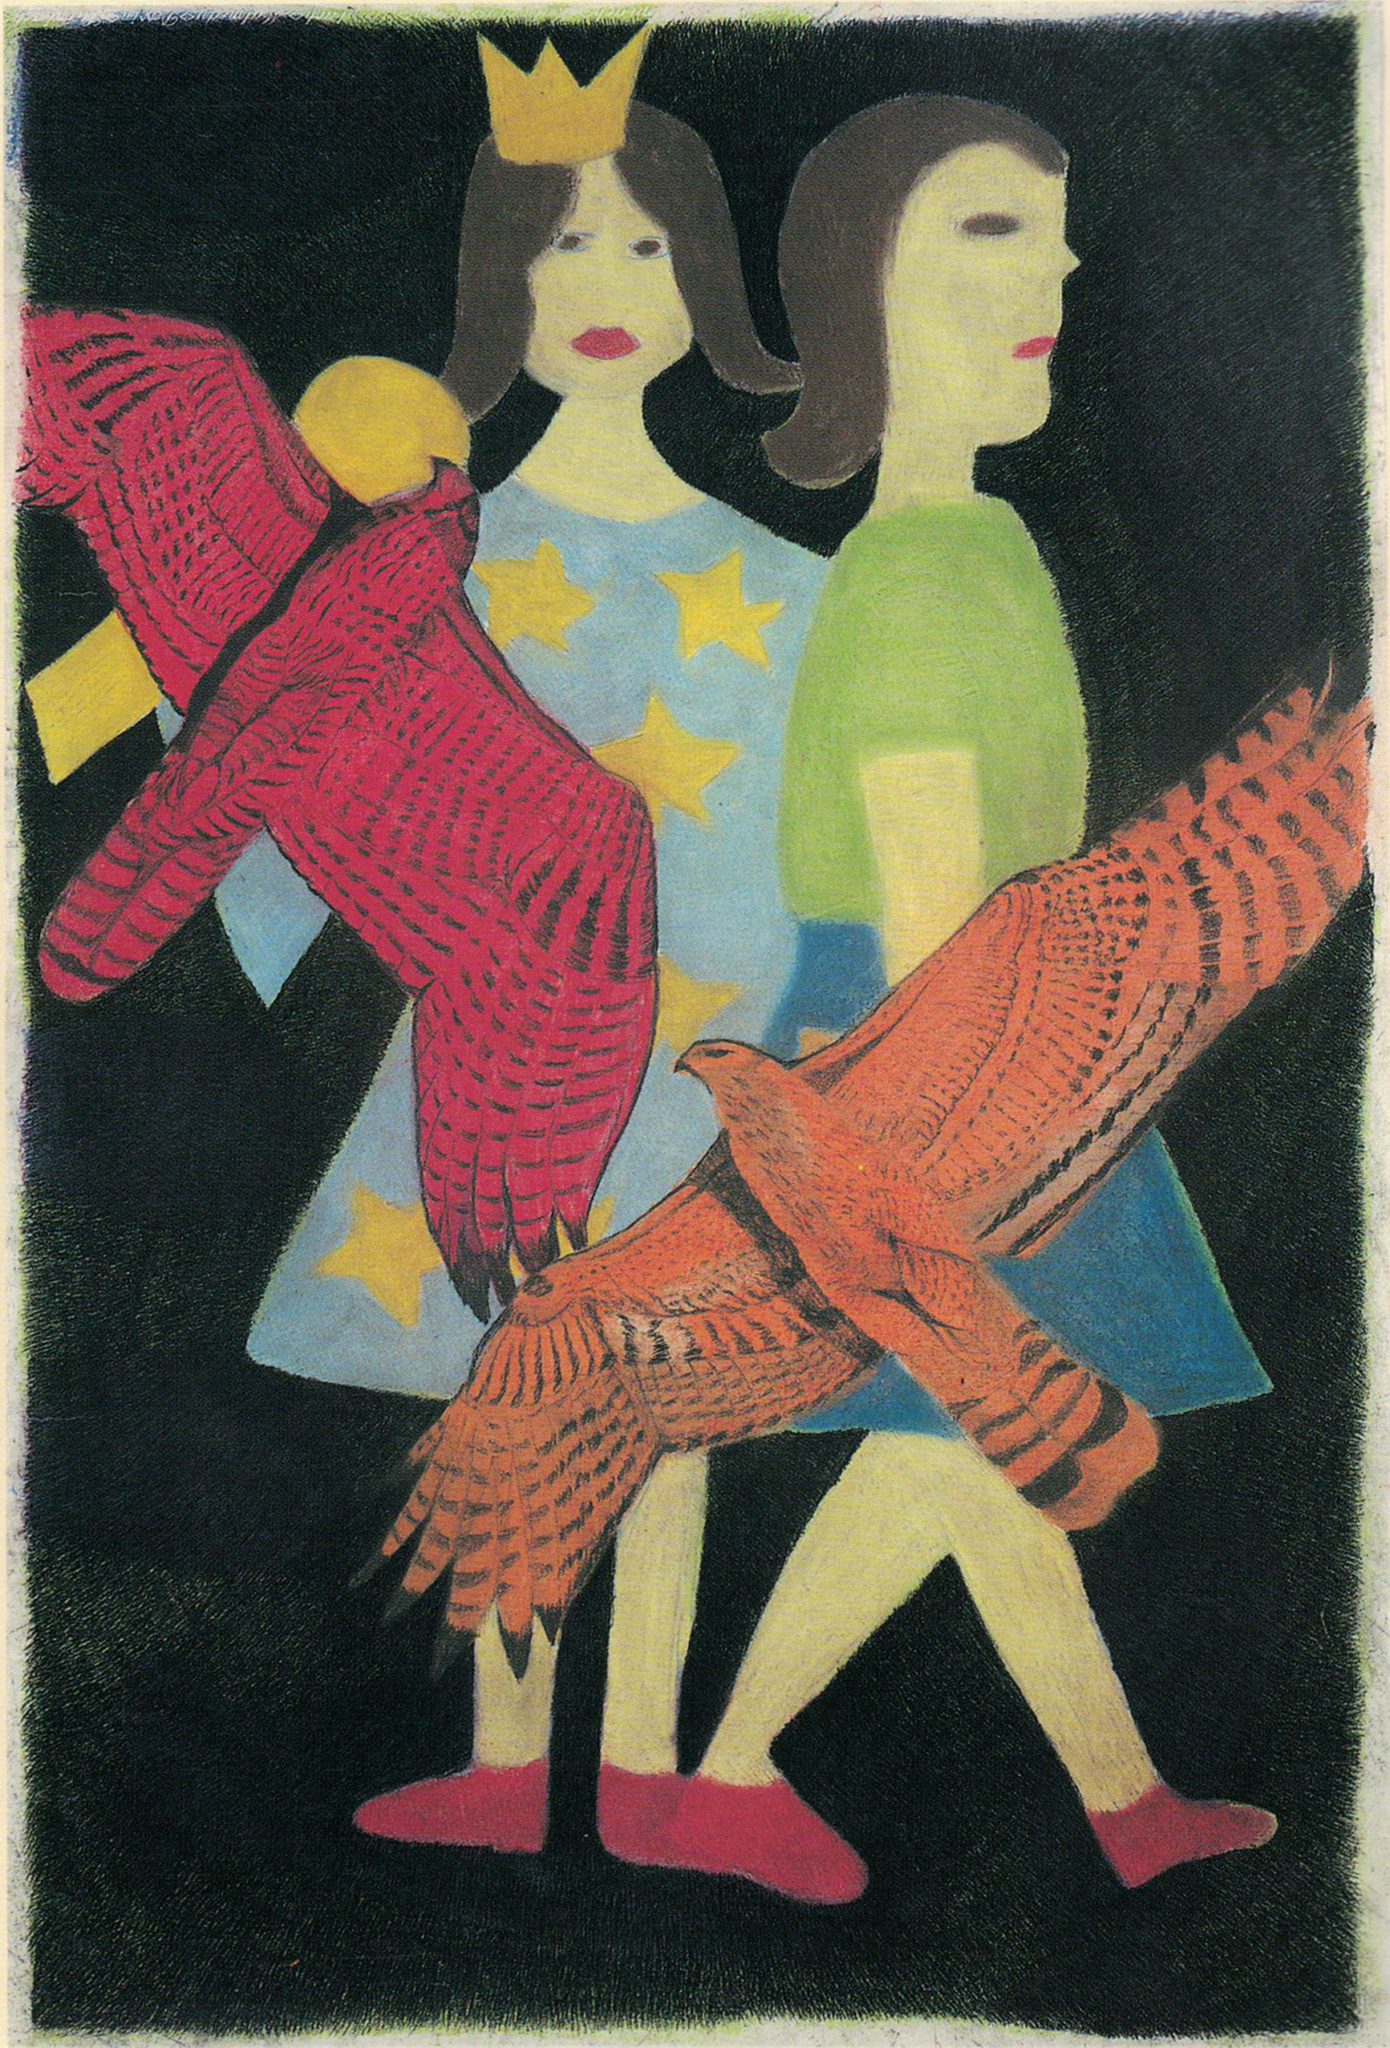 A queen, a girl and two birds, 2000